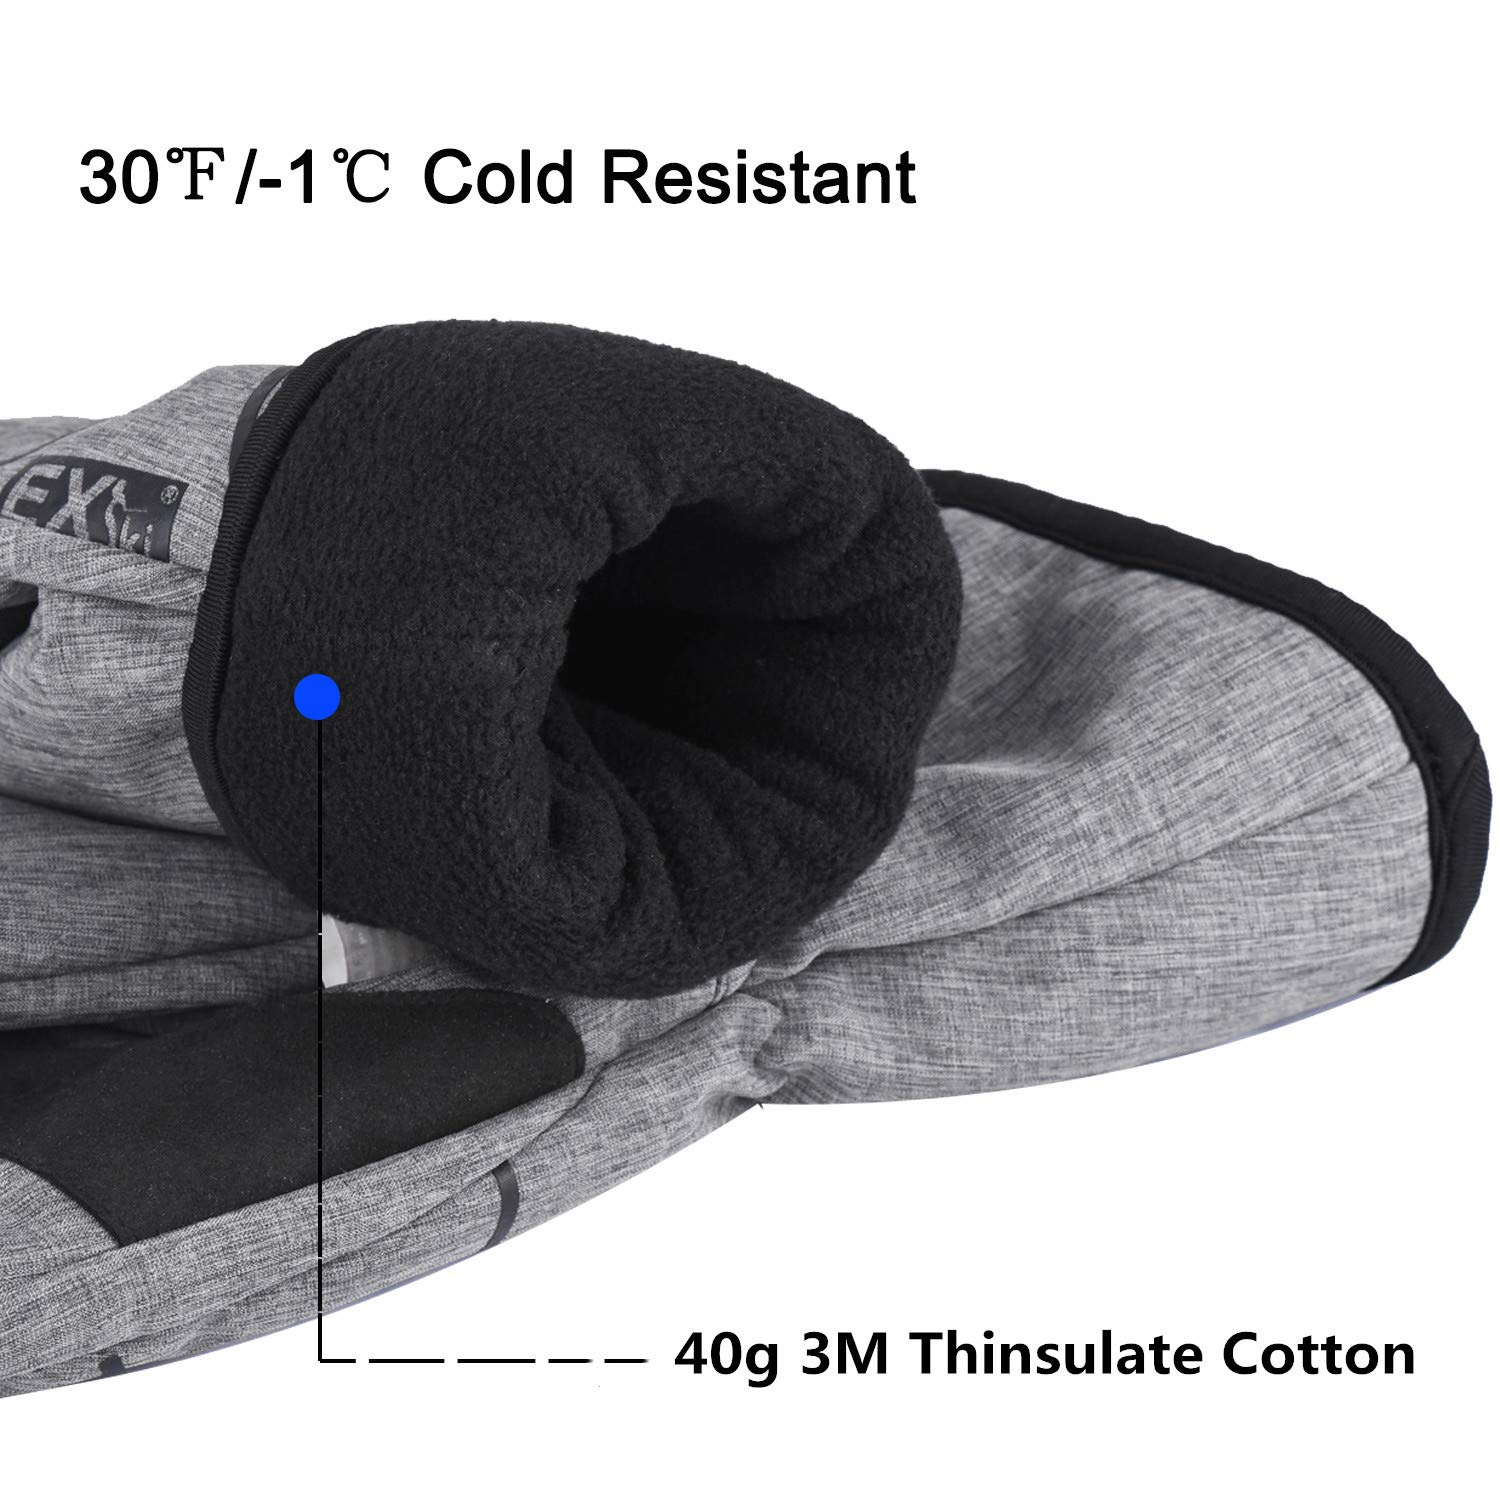 EXski Winter Waterproof Touchscreen Thinsulate Fleece Lined Driving Cycling Skiing Warm Gloves Cold Weather Mens Womens